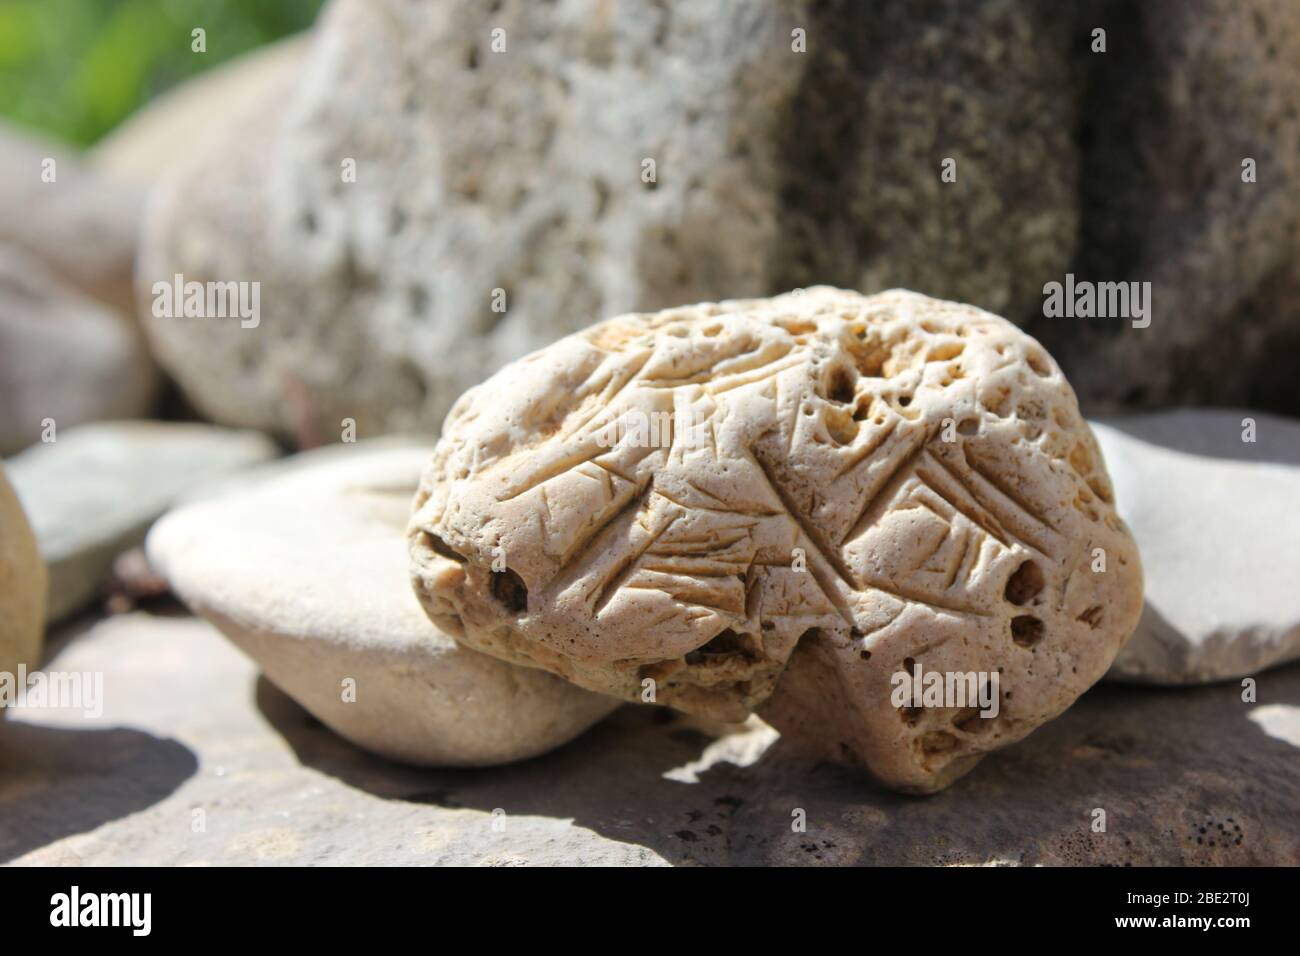 Hag Stone High Resolution Stock Photography And Images Alamy Hag stone holey stone hagstone. https www alamy com hag stone with markings image352875282 html